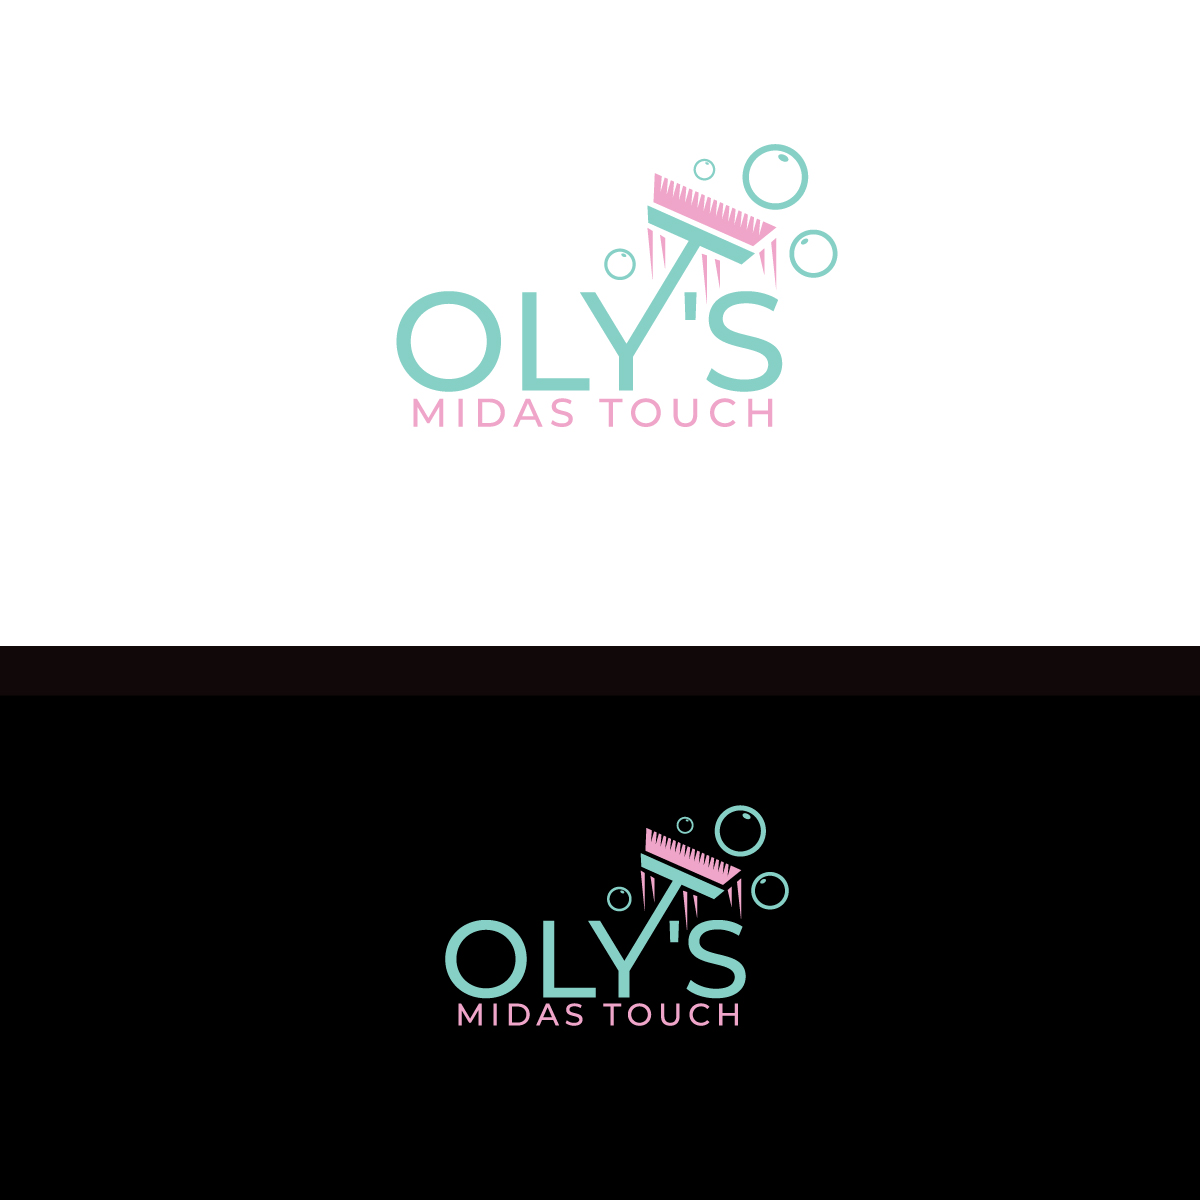 Elegant Playful Cleaning Service Logo Design For Oly S Midas Touch By Brand Maker Design 22418571